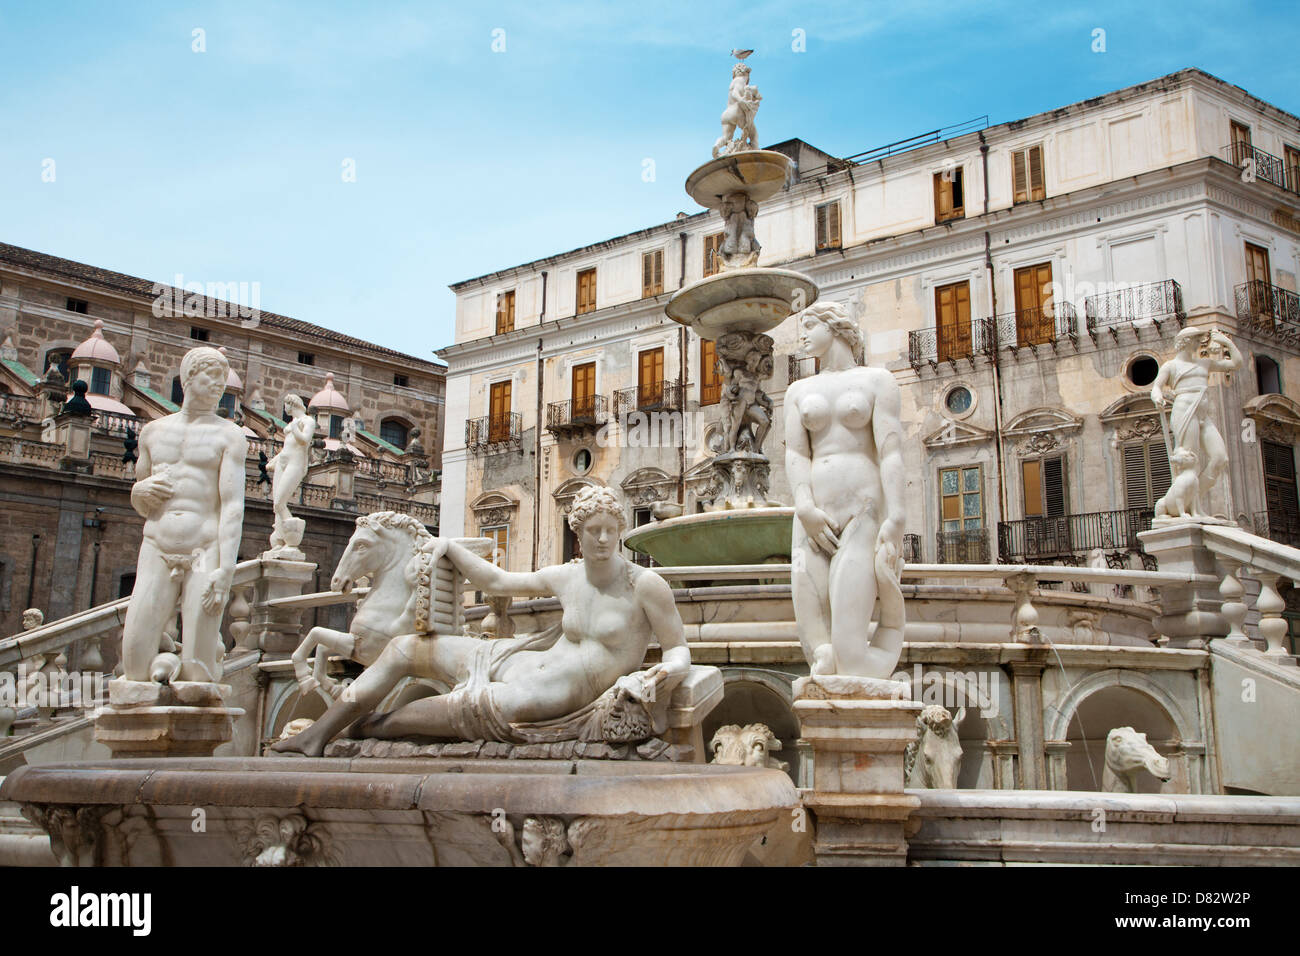 Palermo - Florentine fountain on Piazza Pretoria - Stock Image